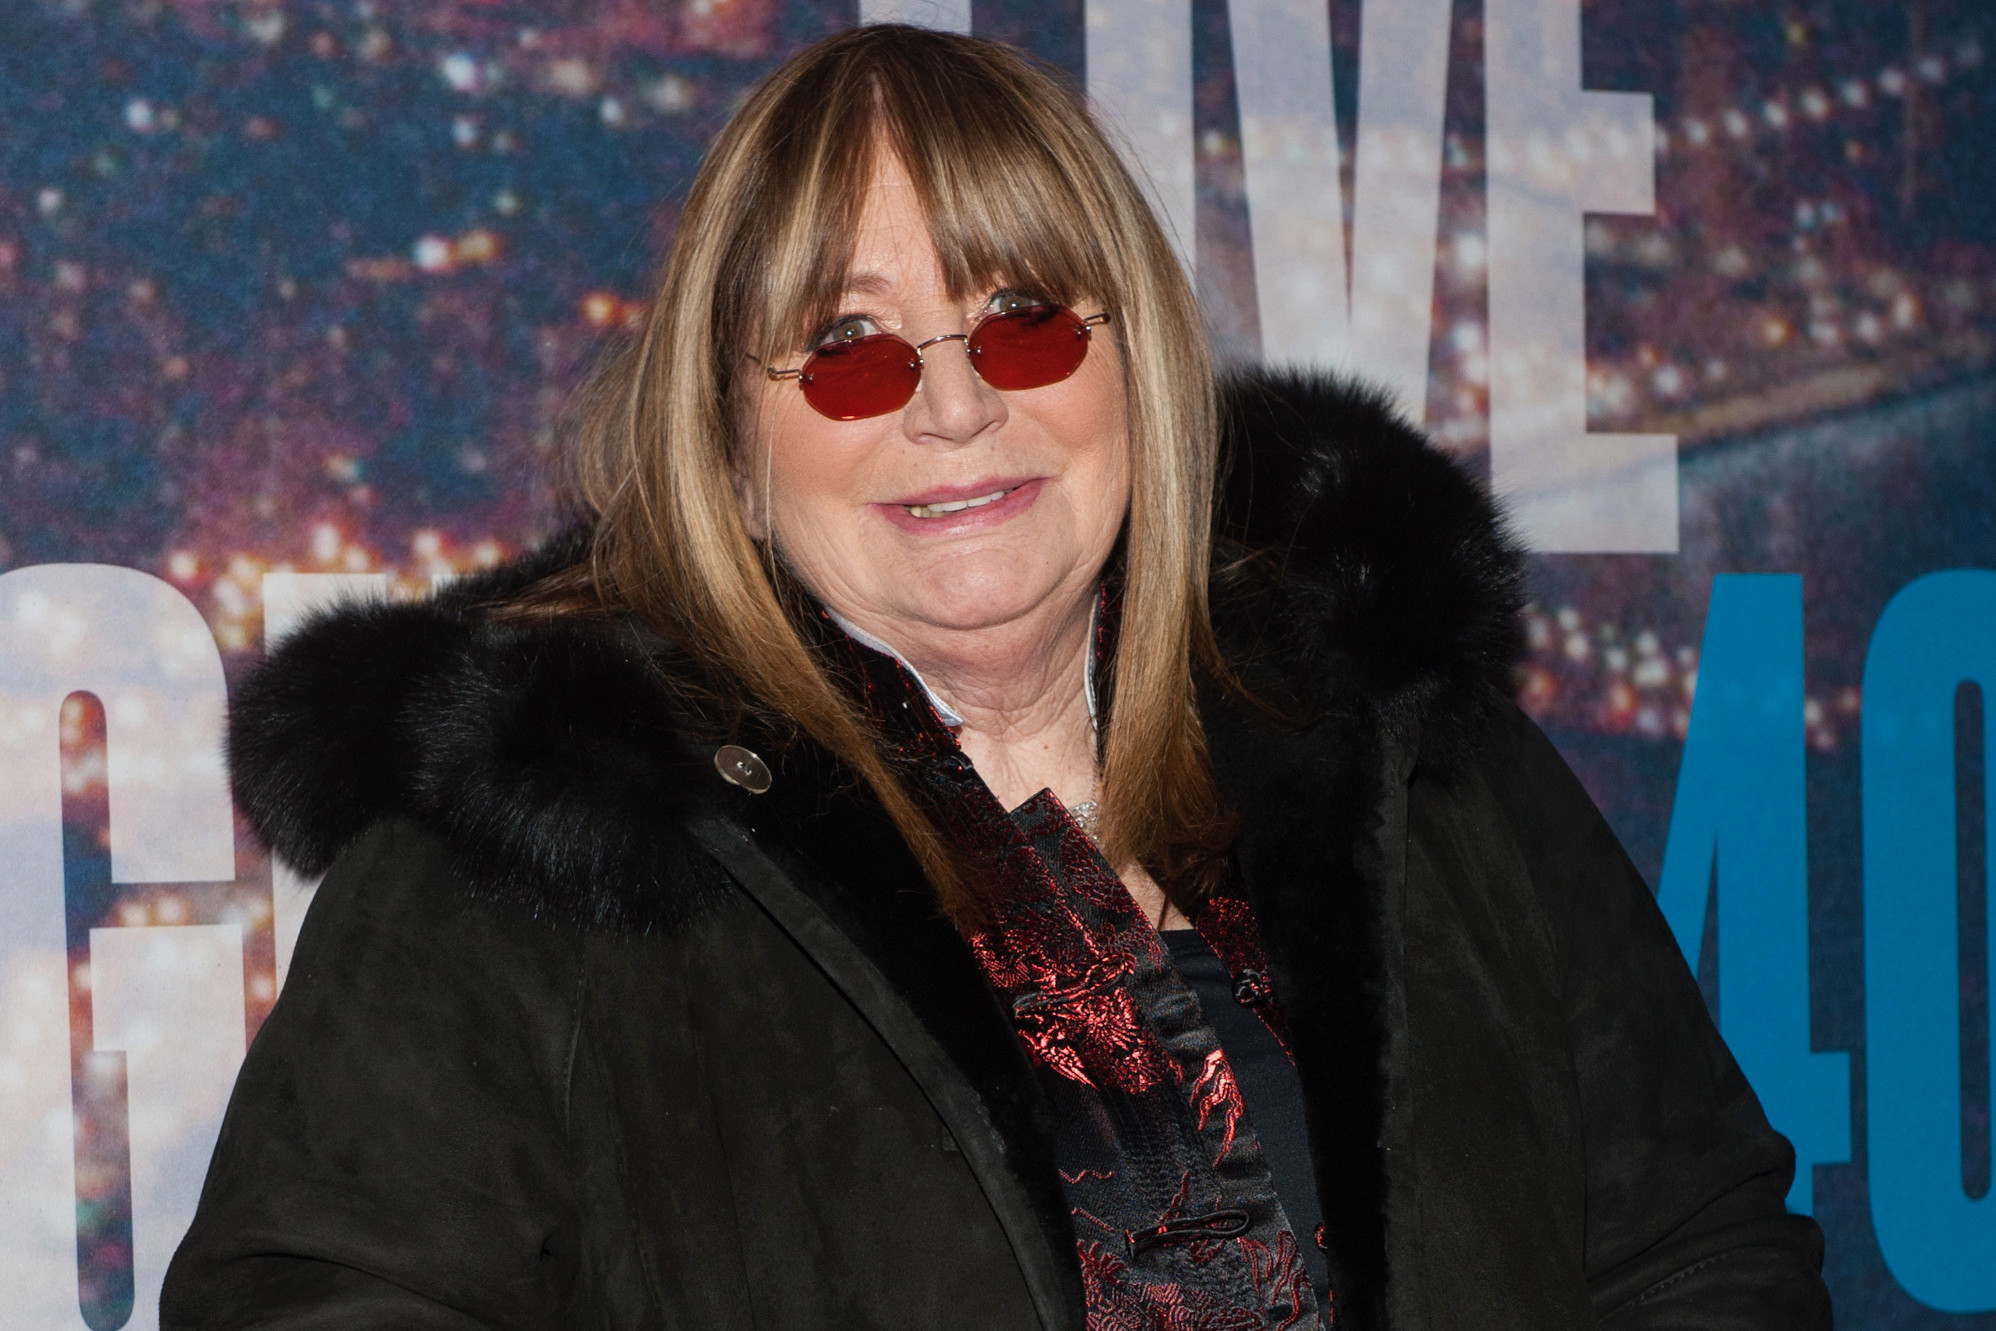 Penny Marshall smiling. She is wearing red specs